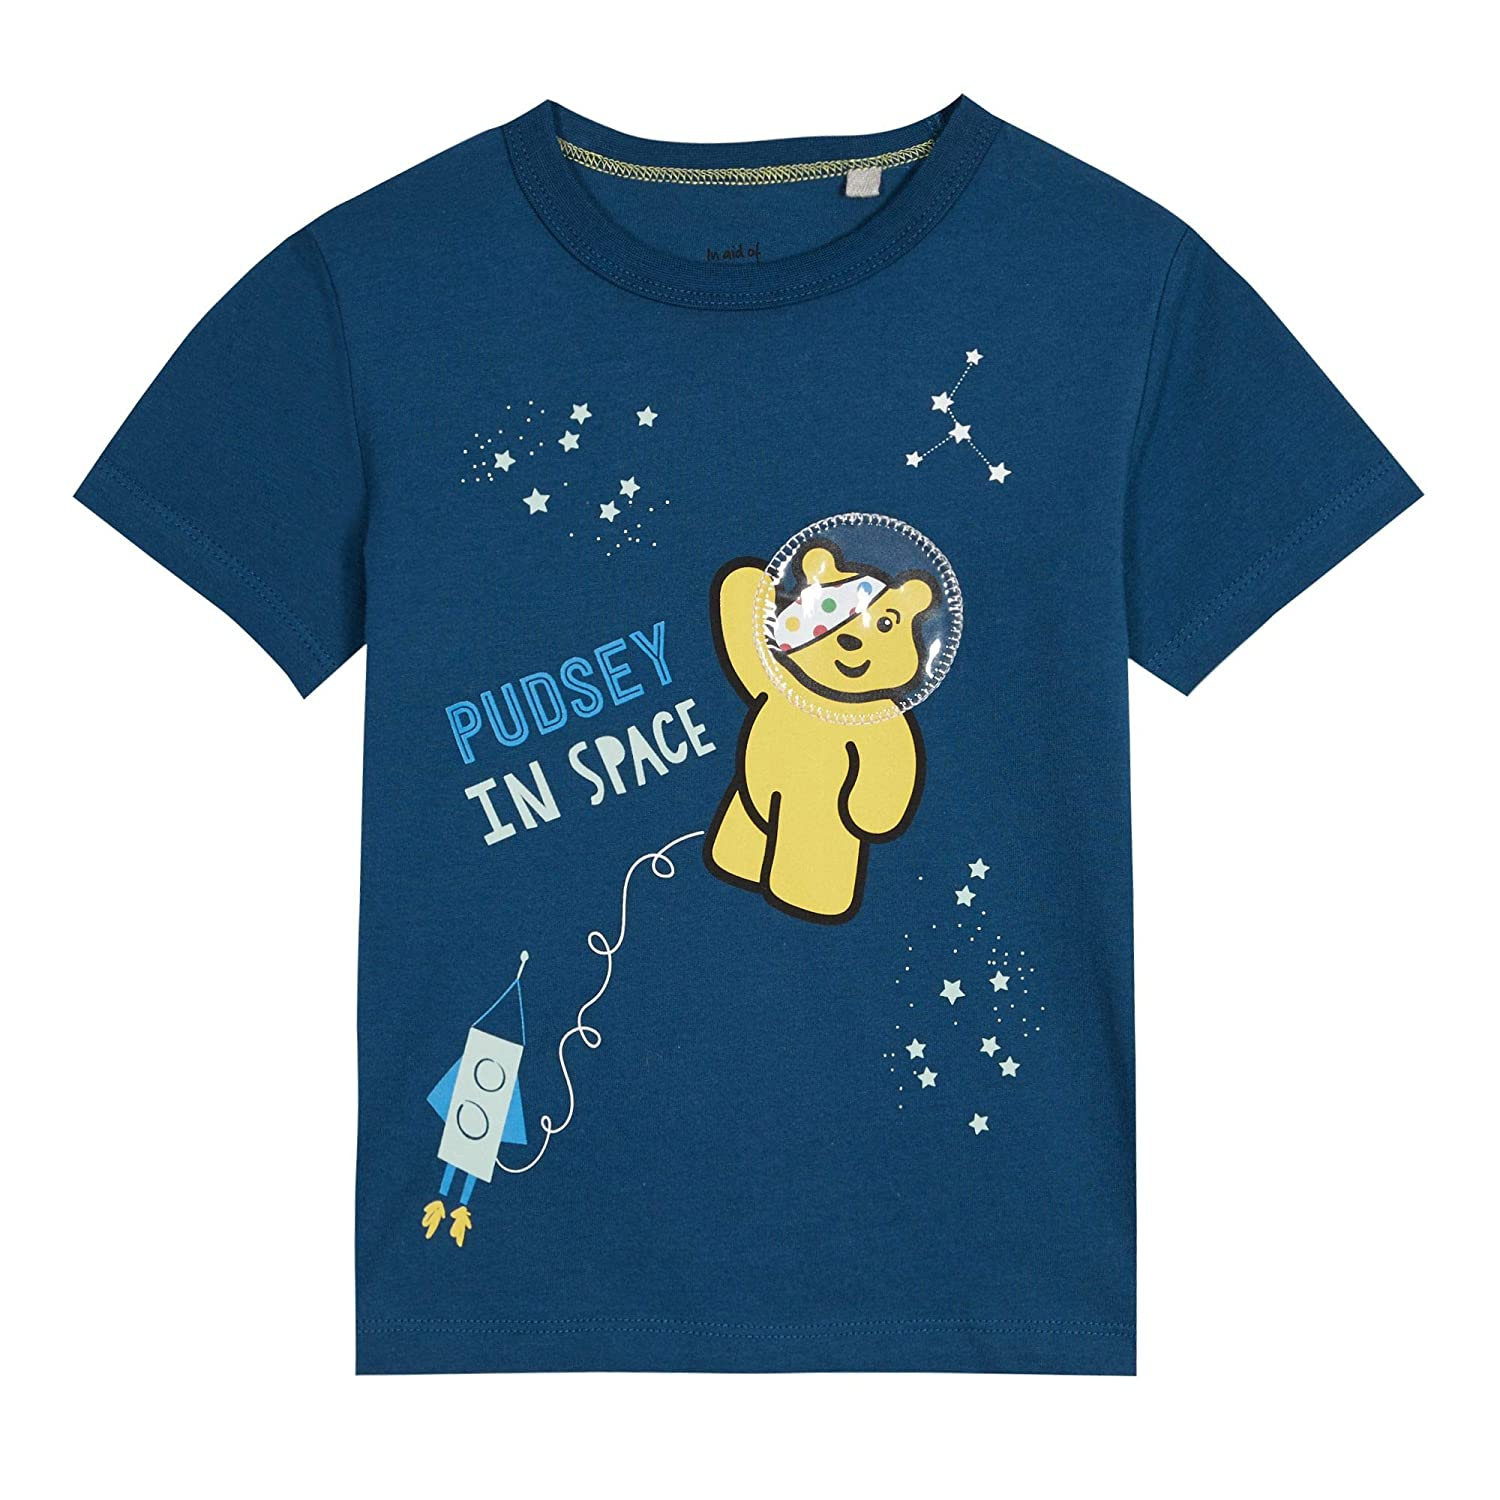 BBC Children In Need Kids Boys' Blue Cotton 'Pudsey' in Space Print T-Shirt